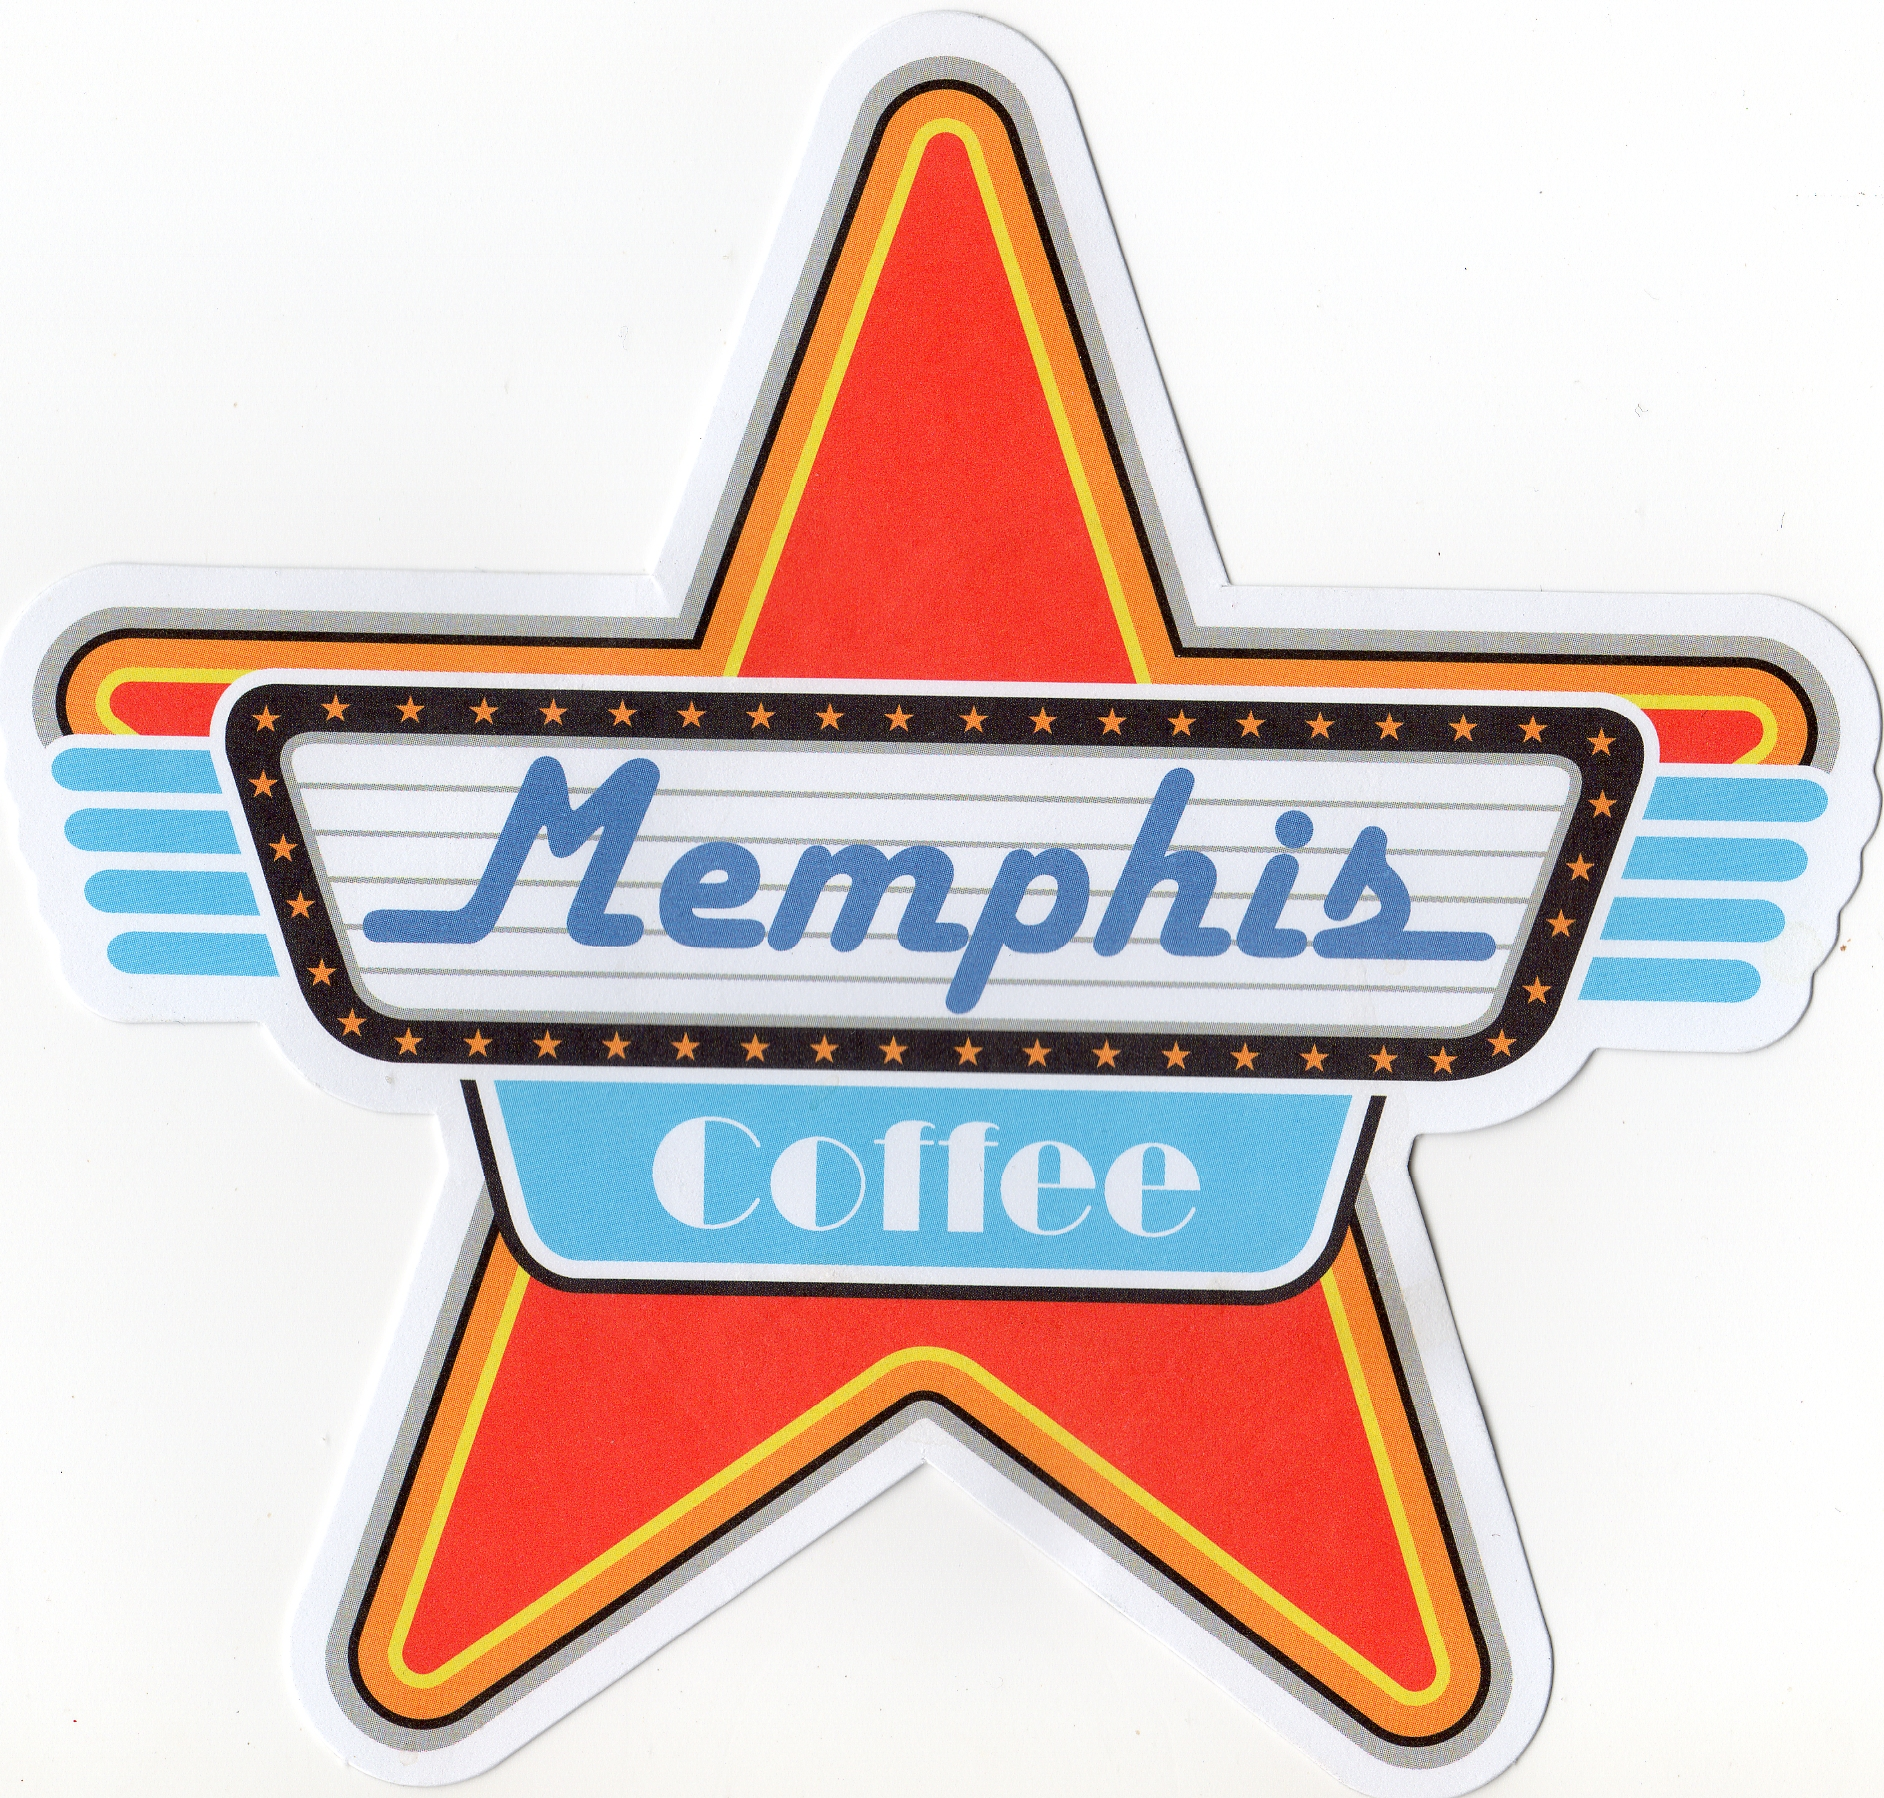 Comment contacter Memphis Coffee ?